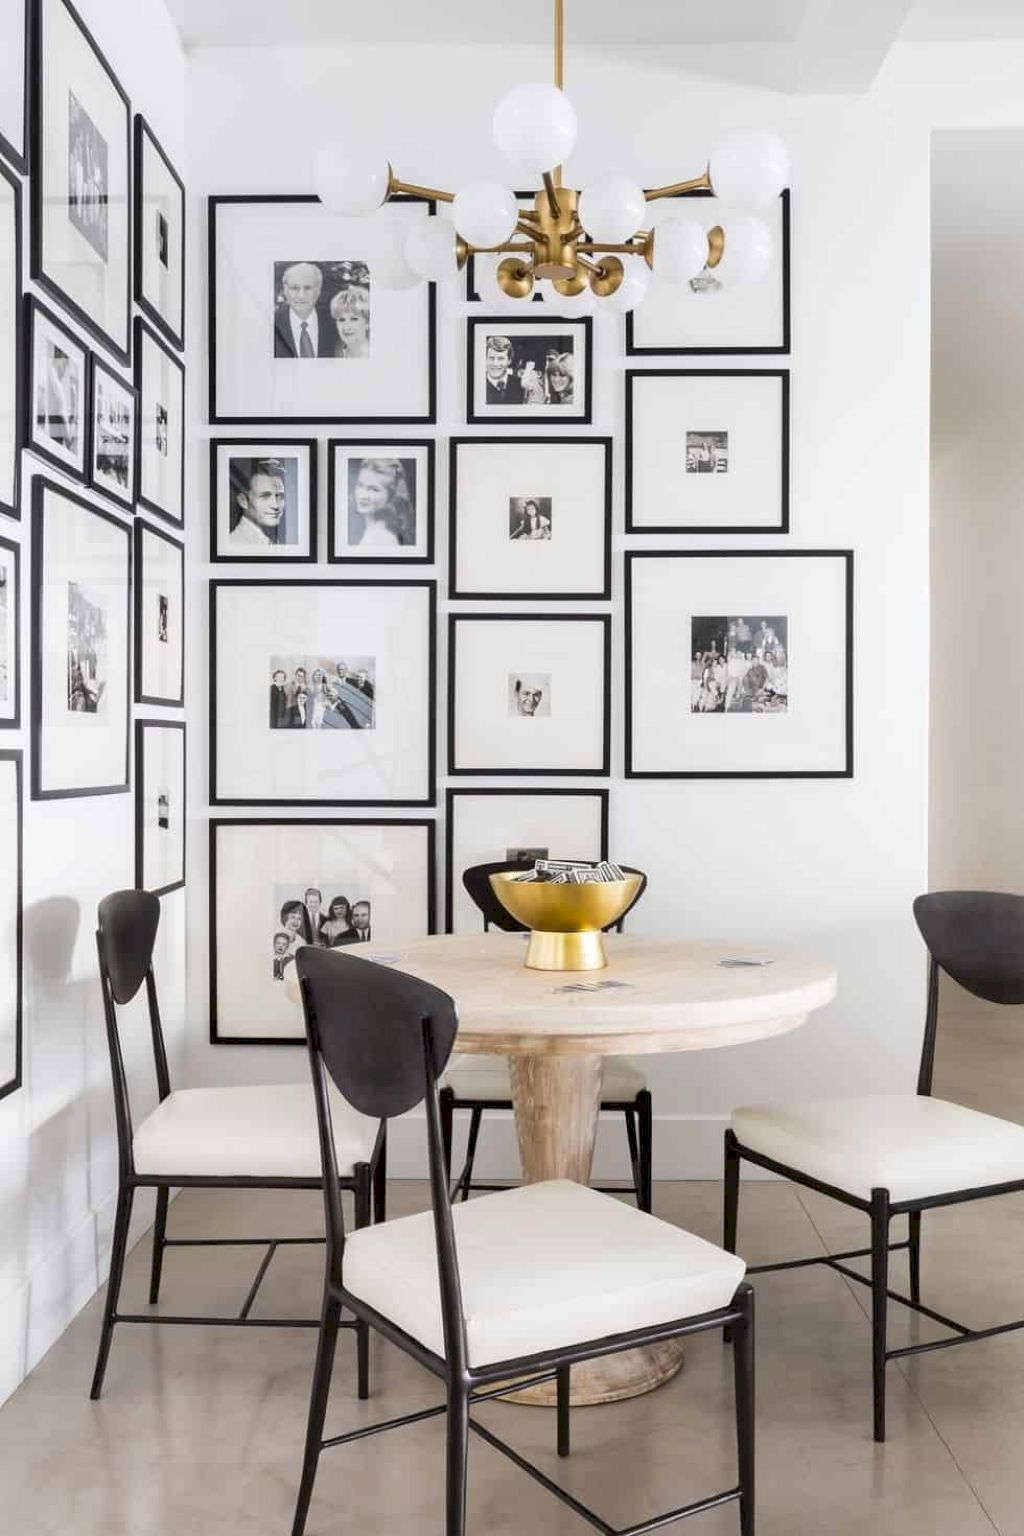 6-Ways-To-Make-The-Most-Of-Your-Dining-Room-Corner-5. El rincón de las fotos